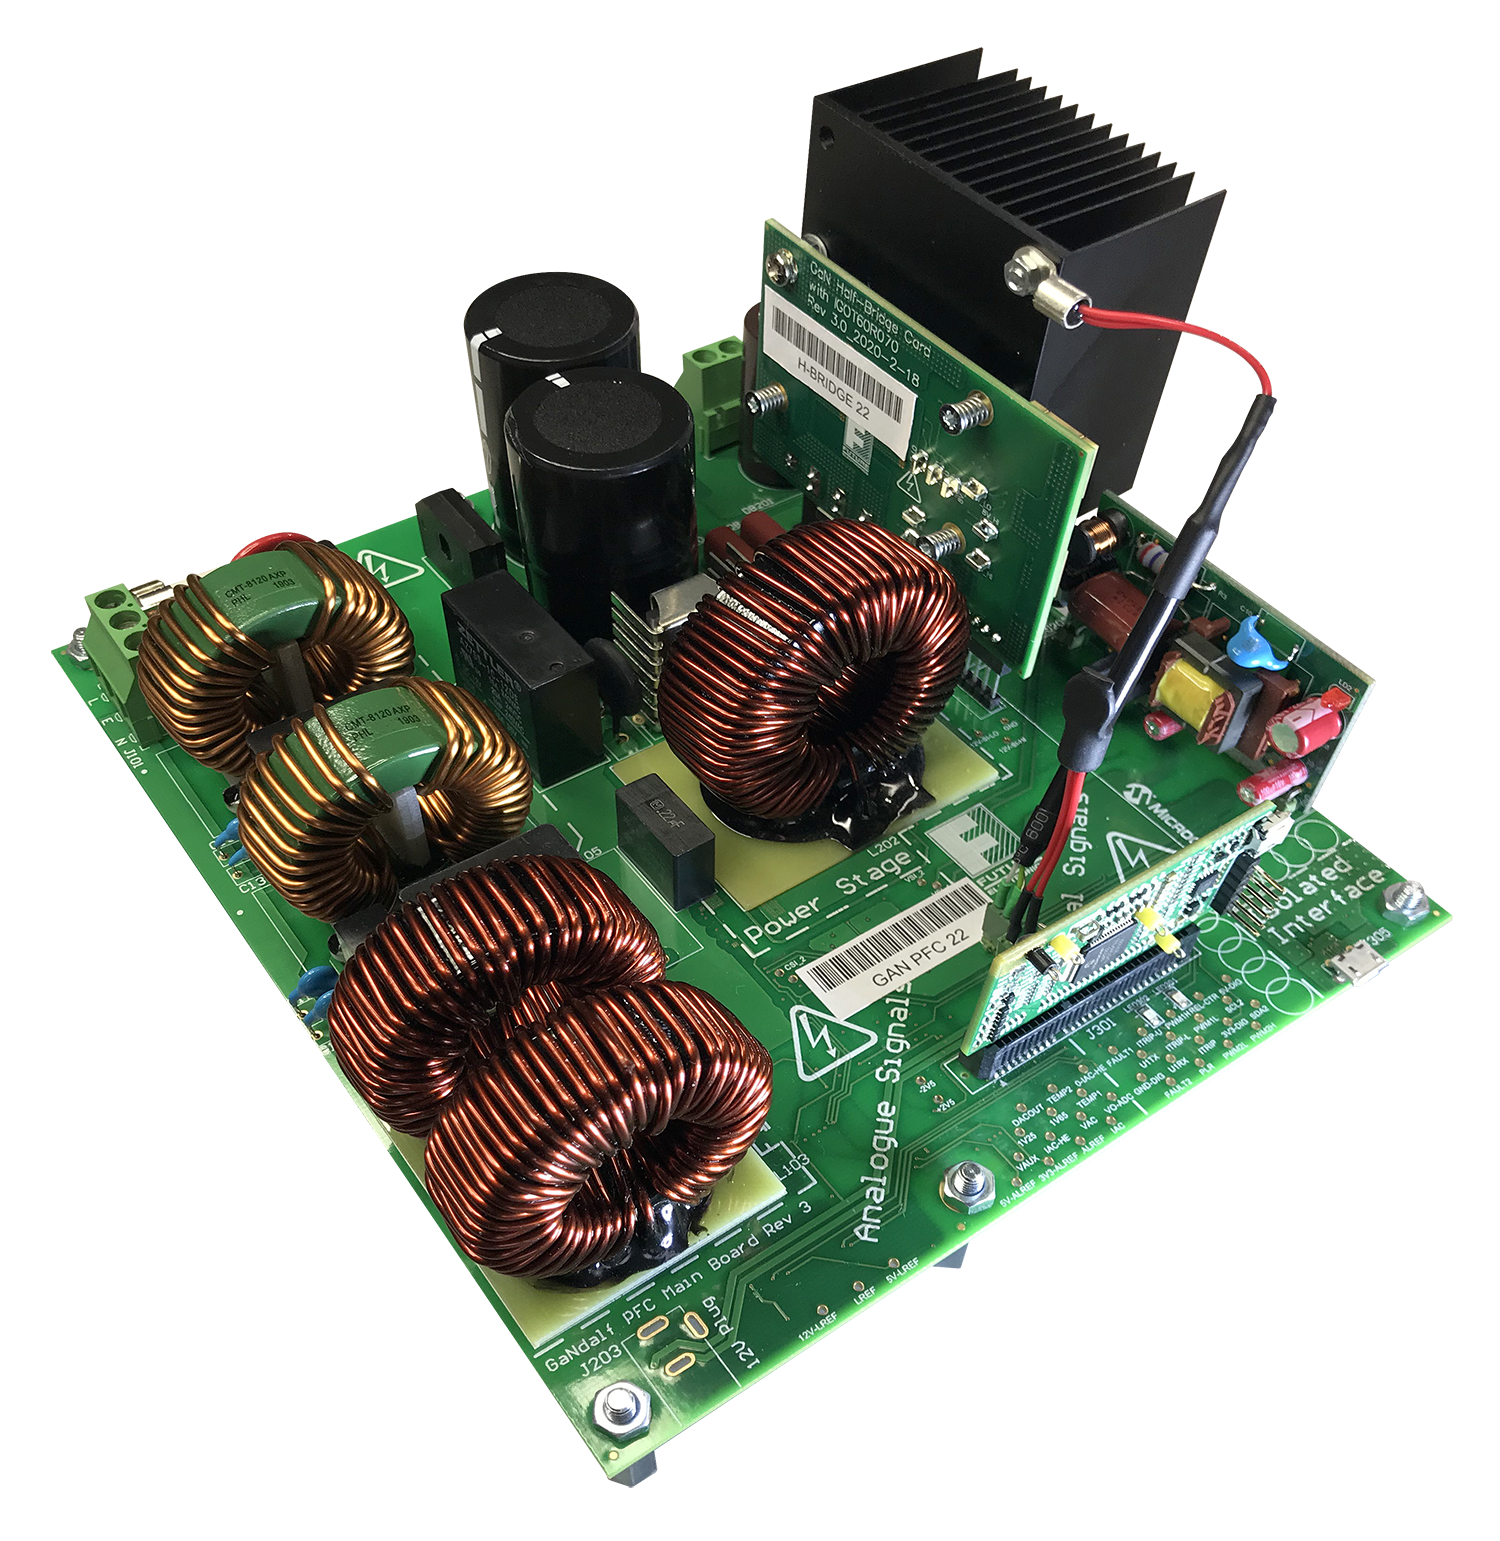 CoolGaN based digital Power Factor Correction development system